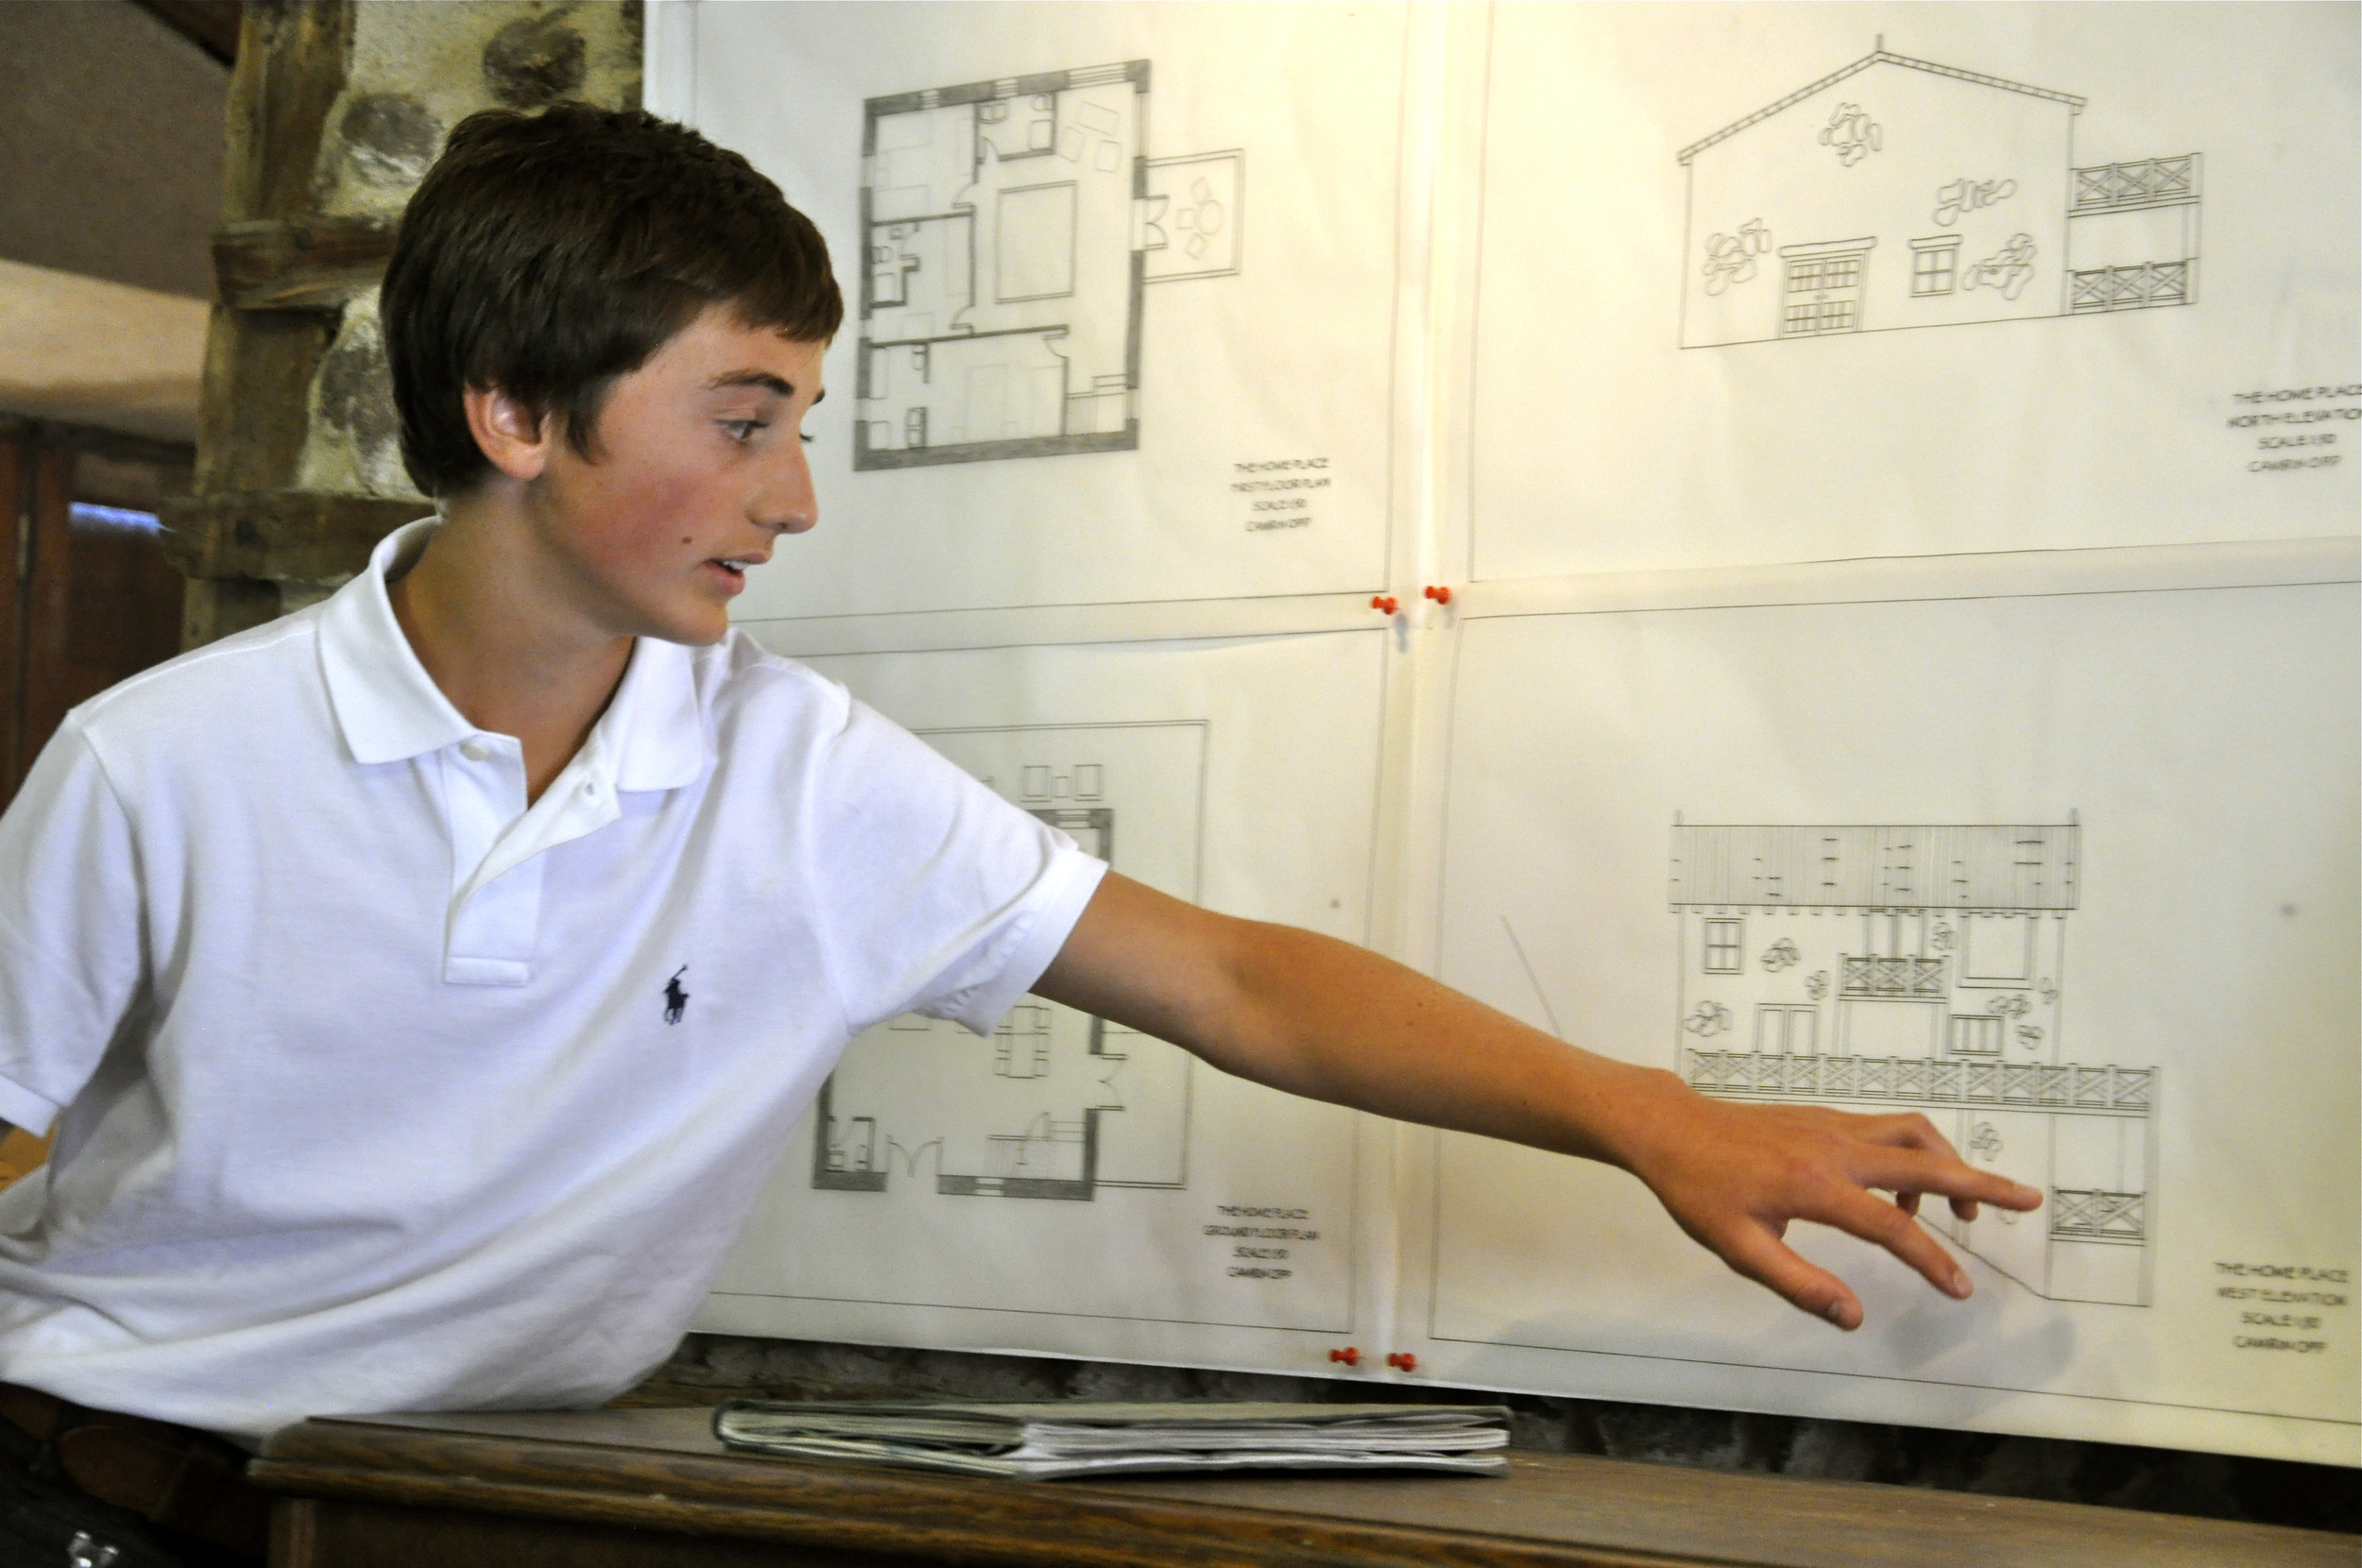 an architecture student presenting his technical drawings